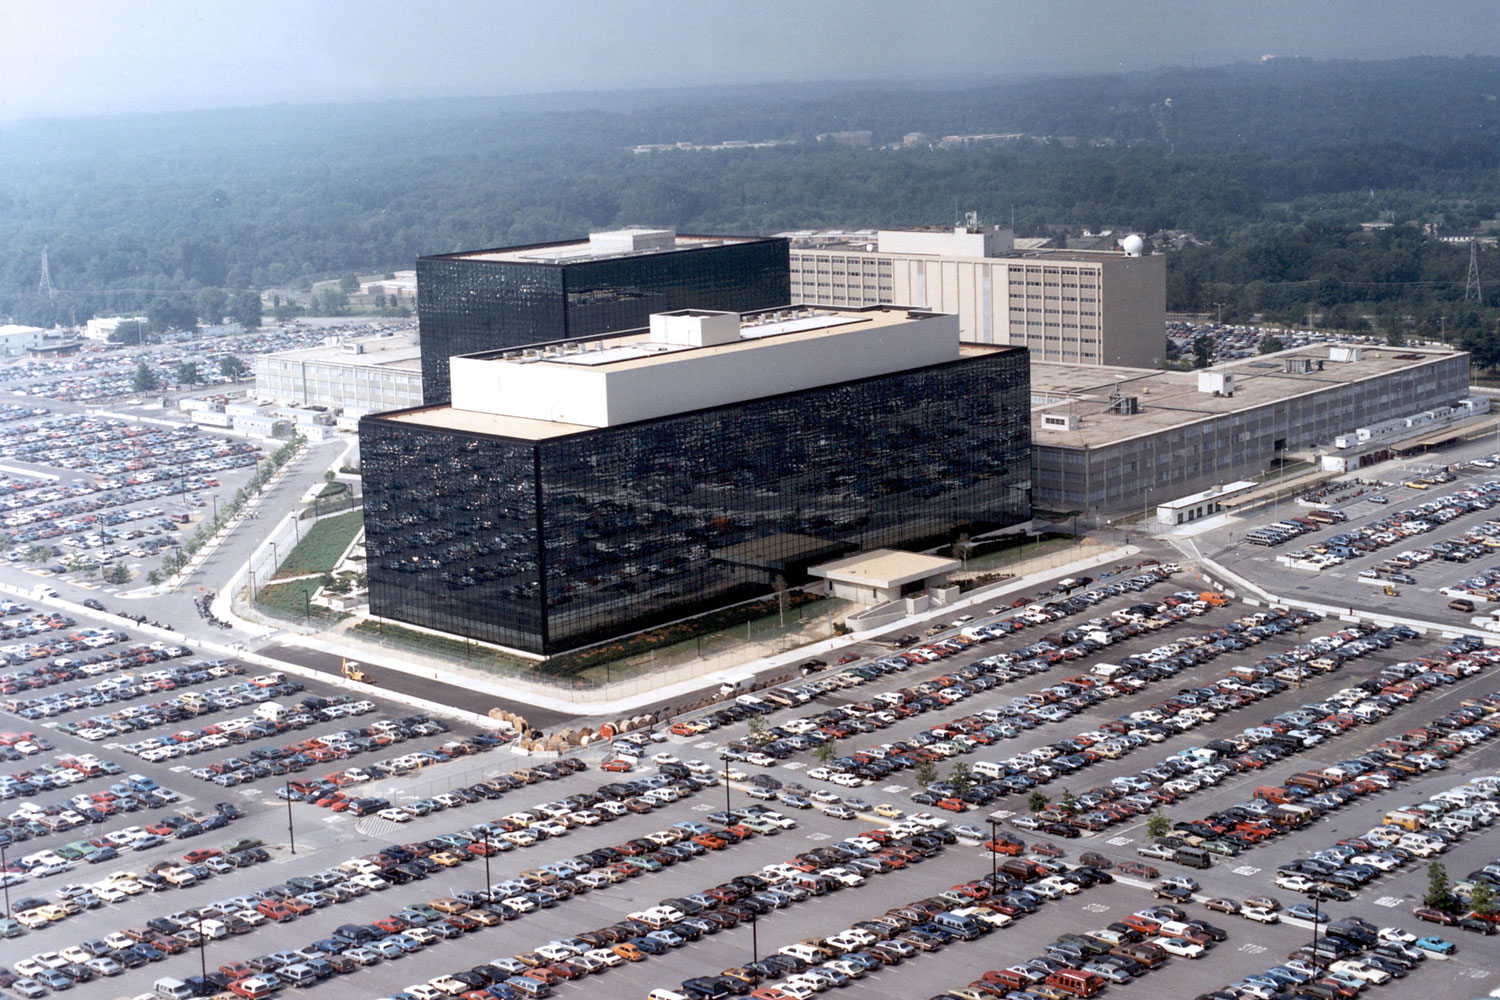 National Security Agency headquarters in Fort Meade, Md.